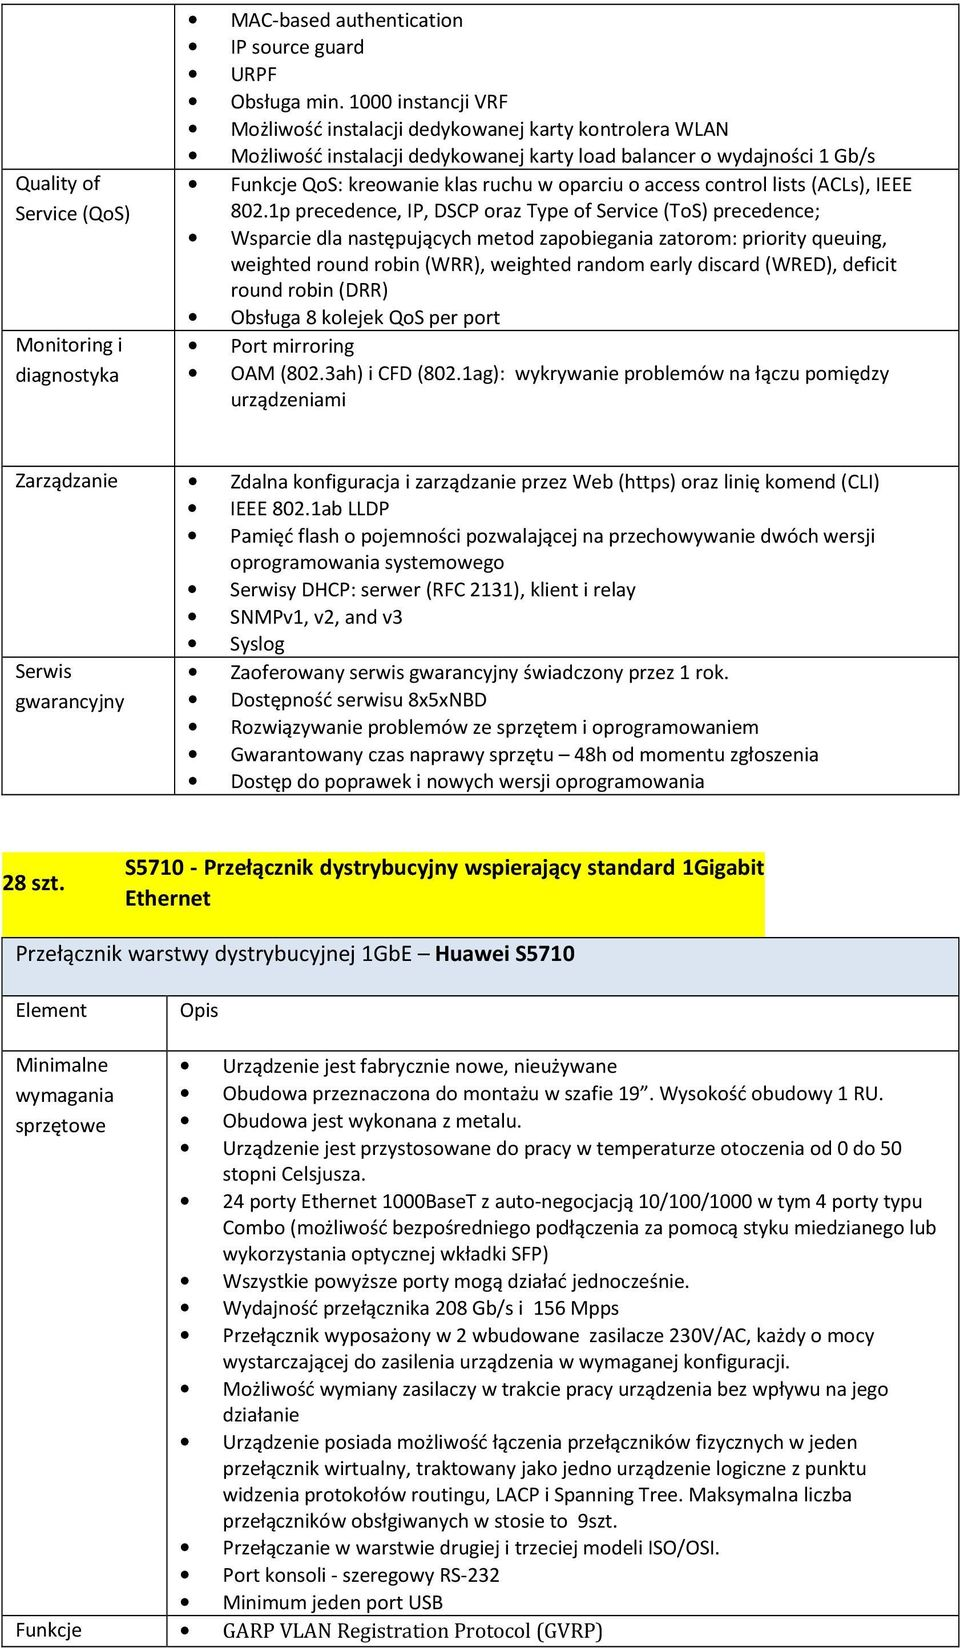 control lists (ACLs), IEEE 802.